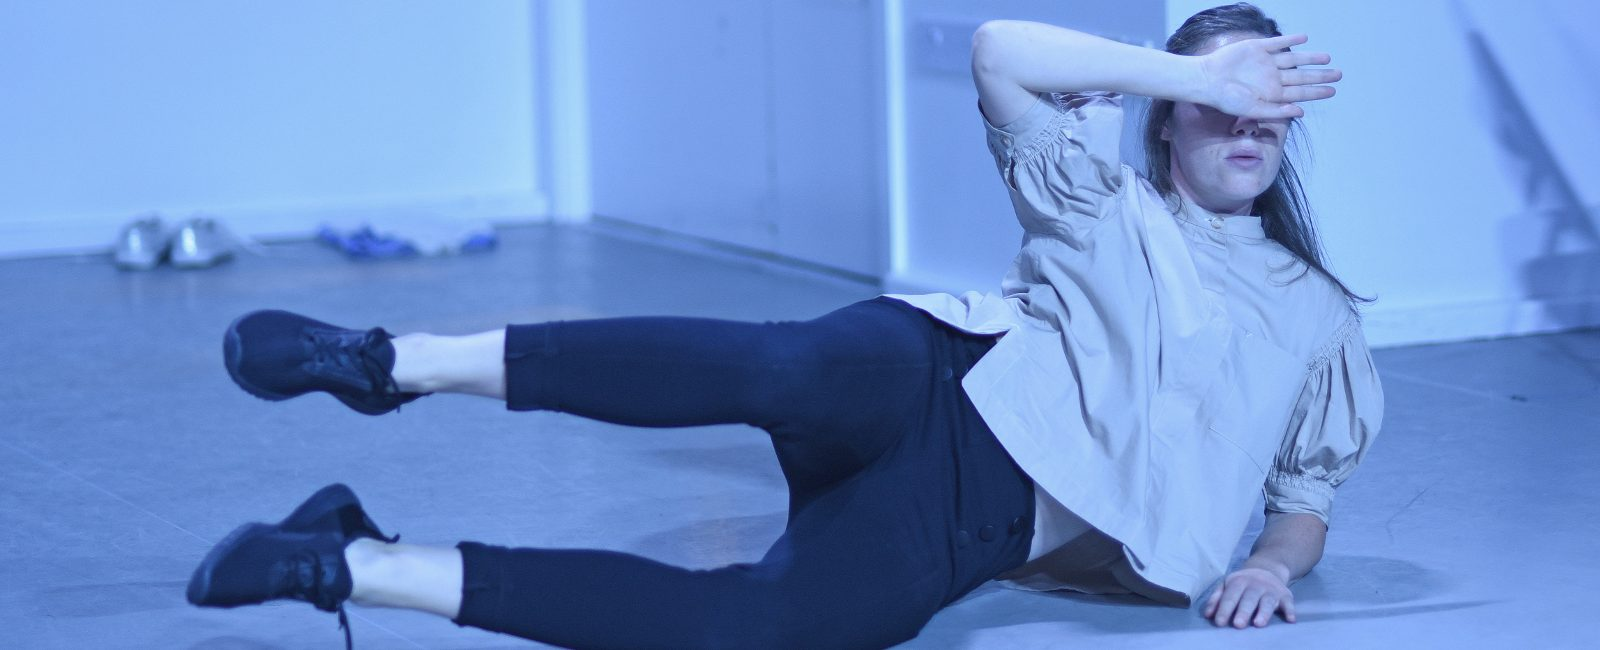 Dancer Sarah Ryan performs Áine Stapleton's Horrible Creature, a choreographed piece based on the life of Lucia Joyce